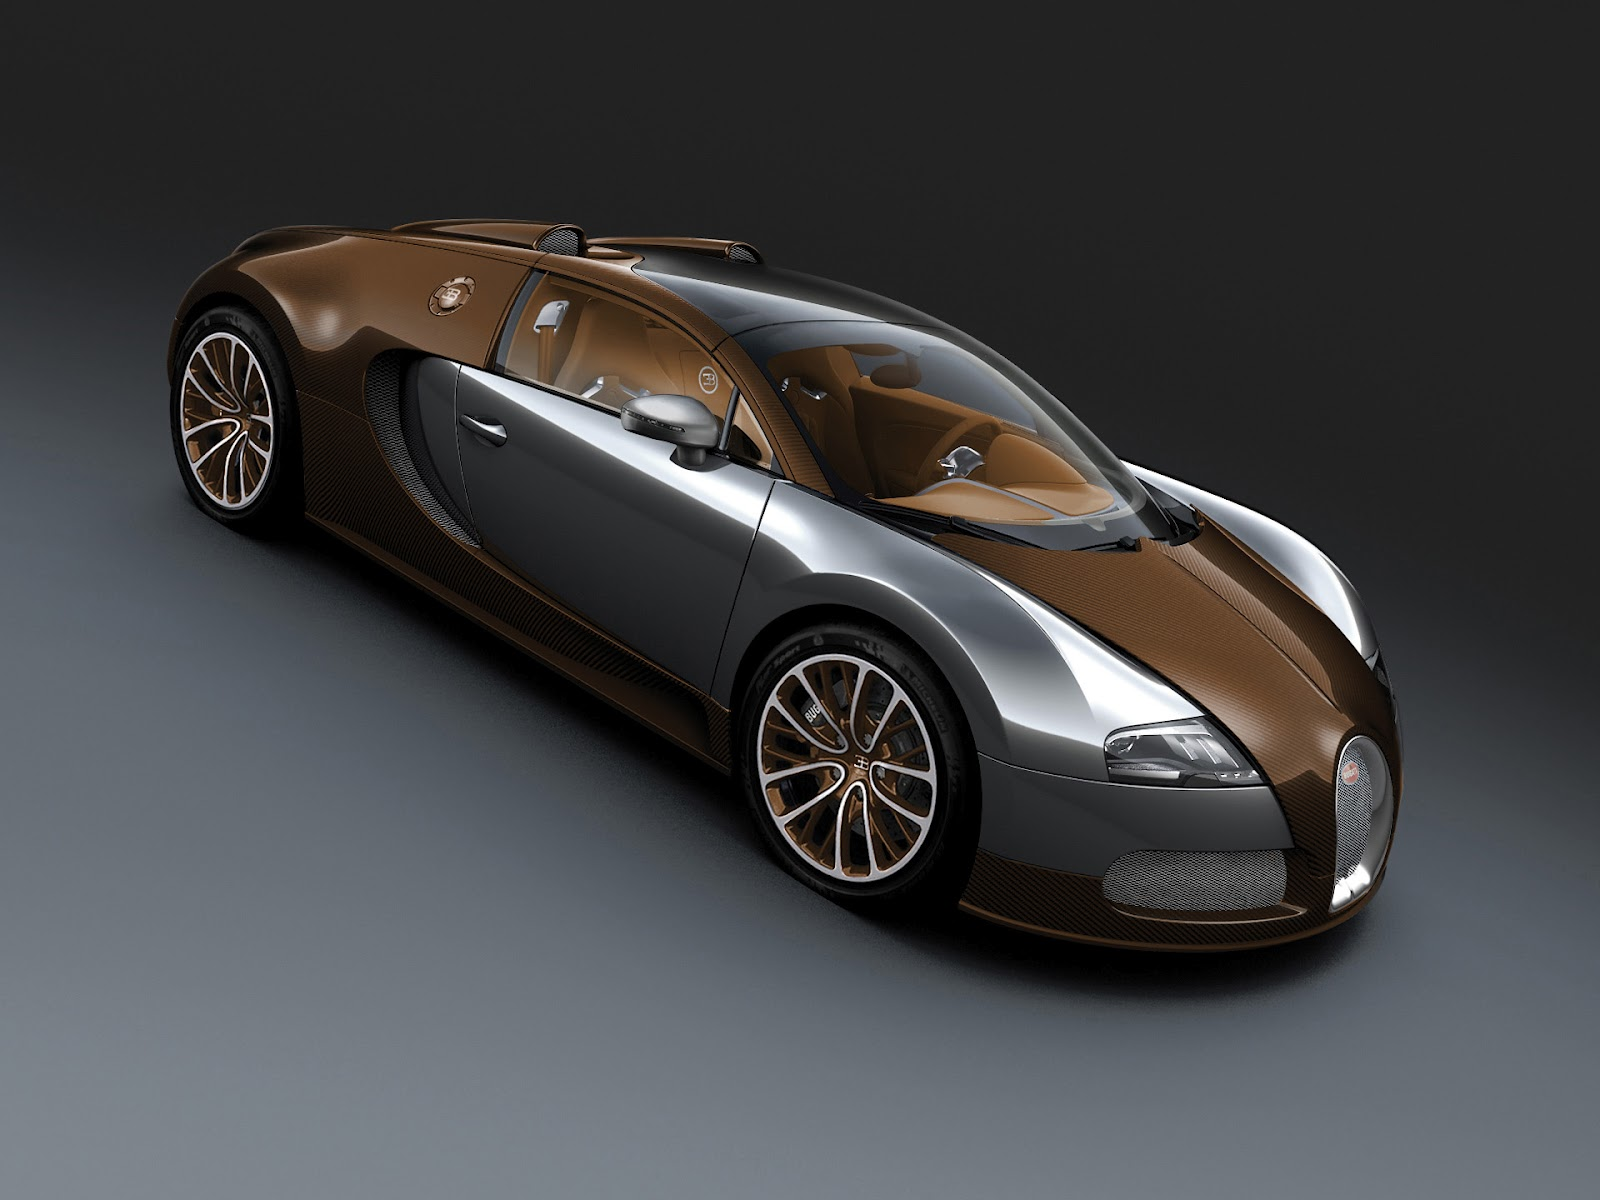 2012 Bugatti Veyron 16.4 Grand Sport Brown Carbon Fiber ...